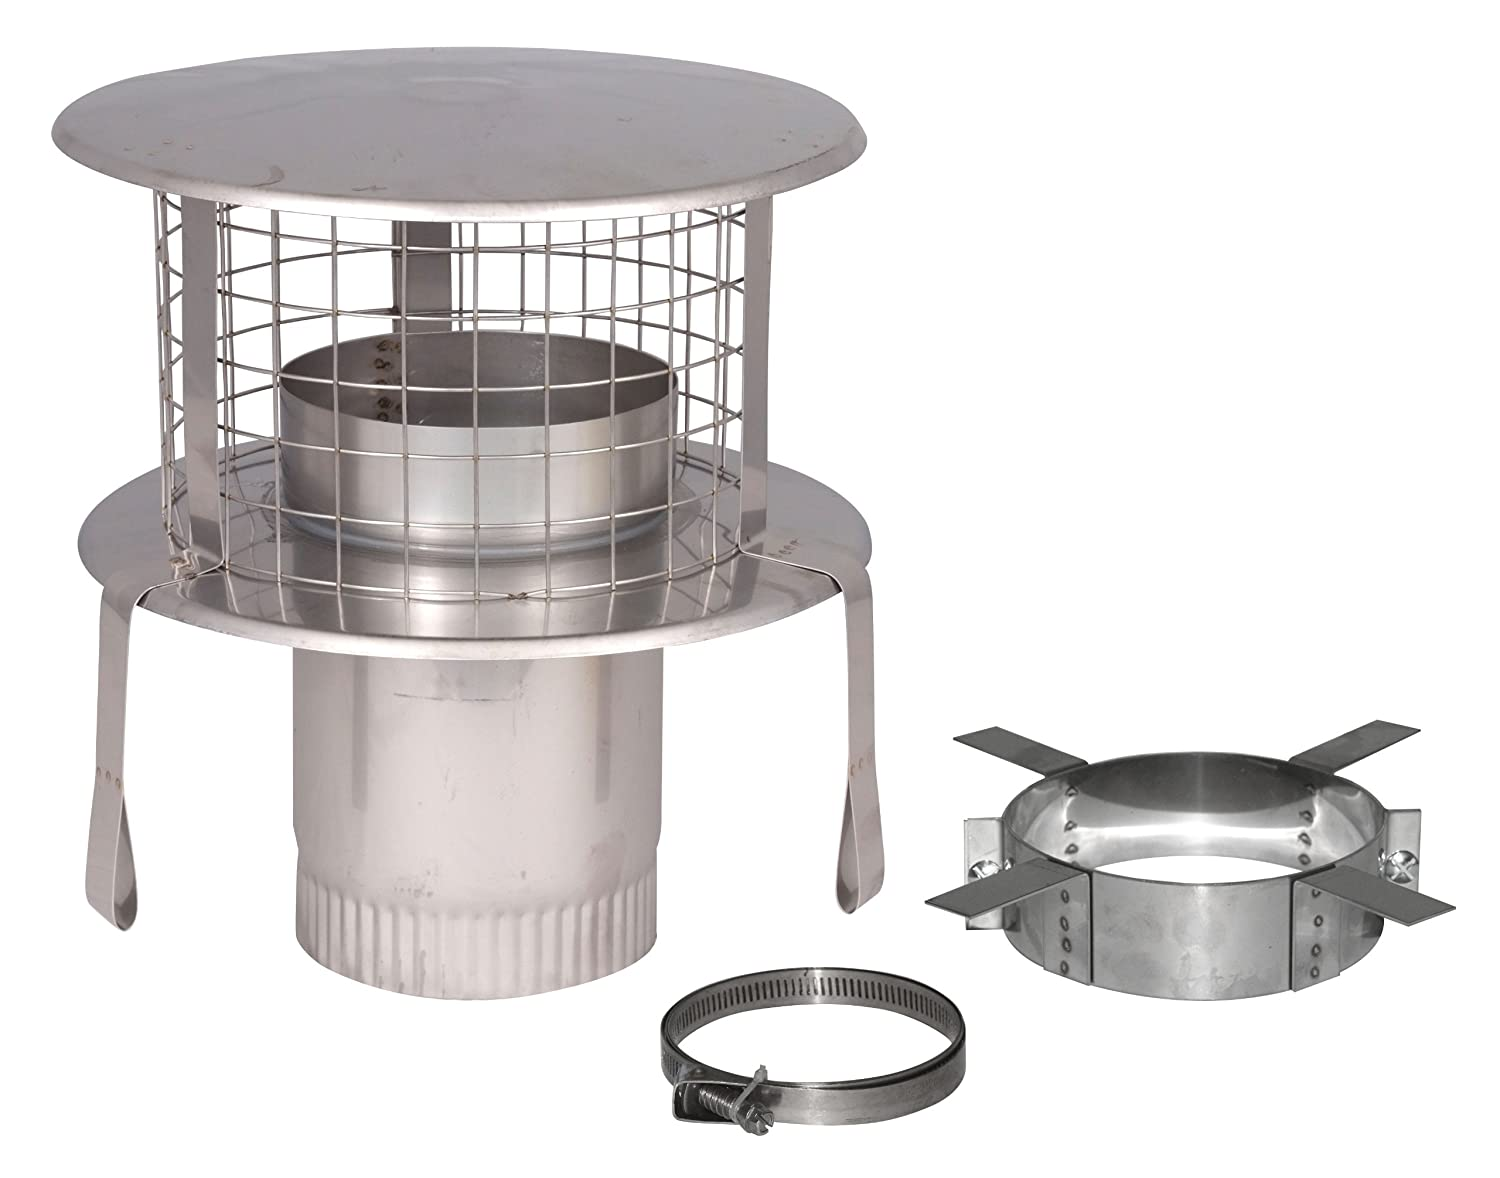 StoveMaestro 5 inch Pot Hanging Cowl with Bird Guard for Flexible Flue Liner.